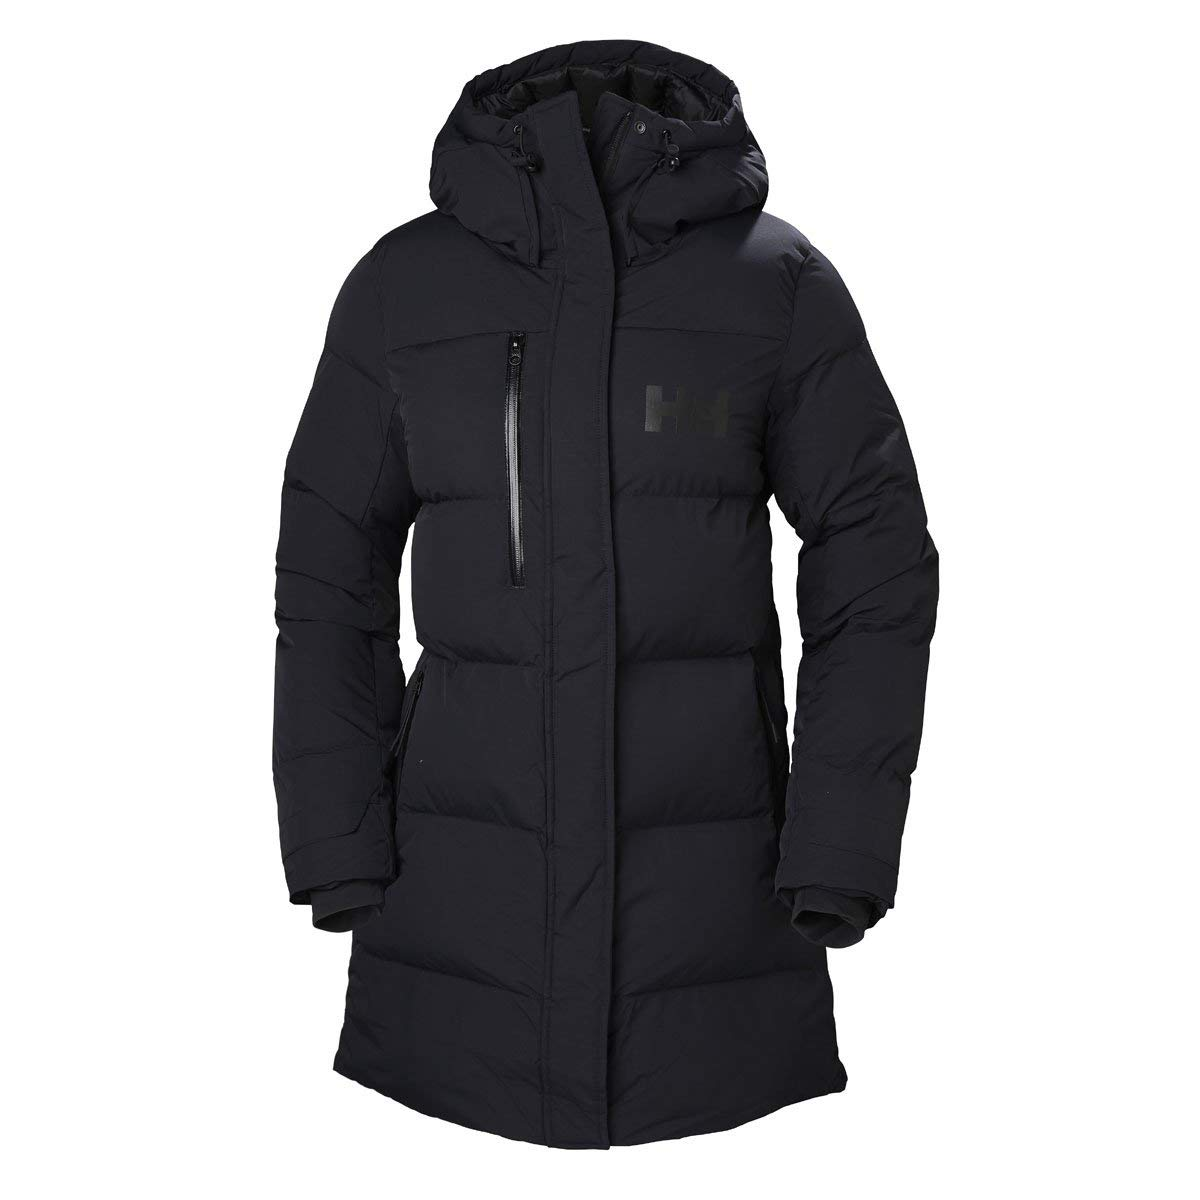 Helly Hansen Women's Adore Puffy Insulated Parka Jacket